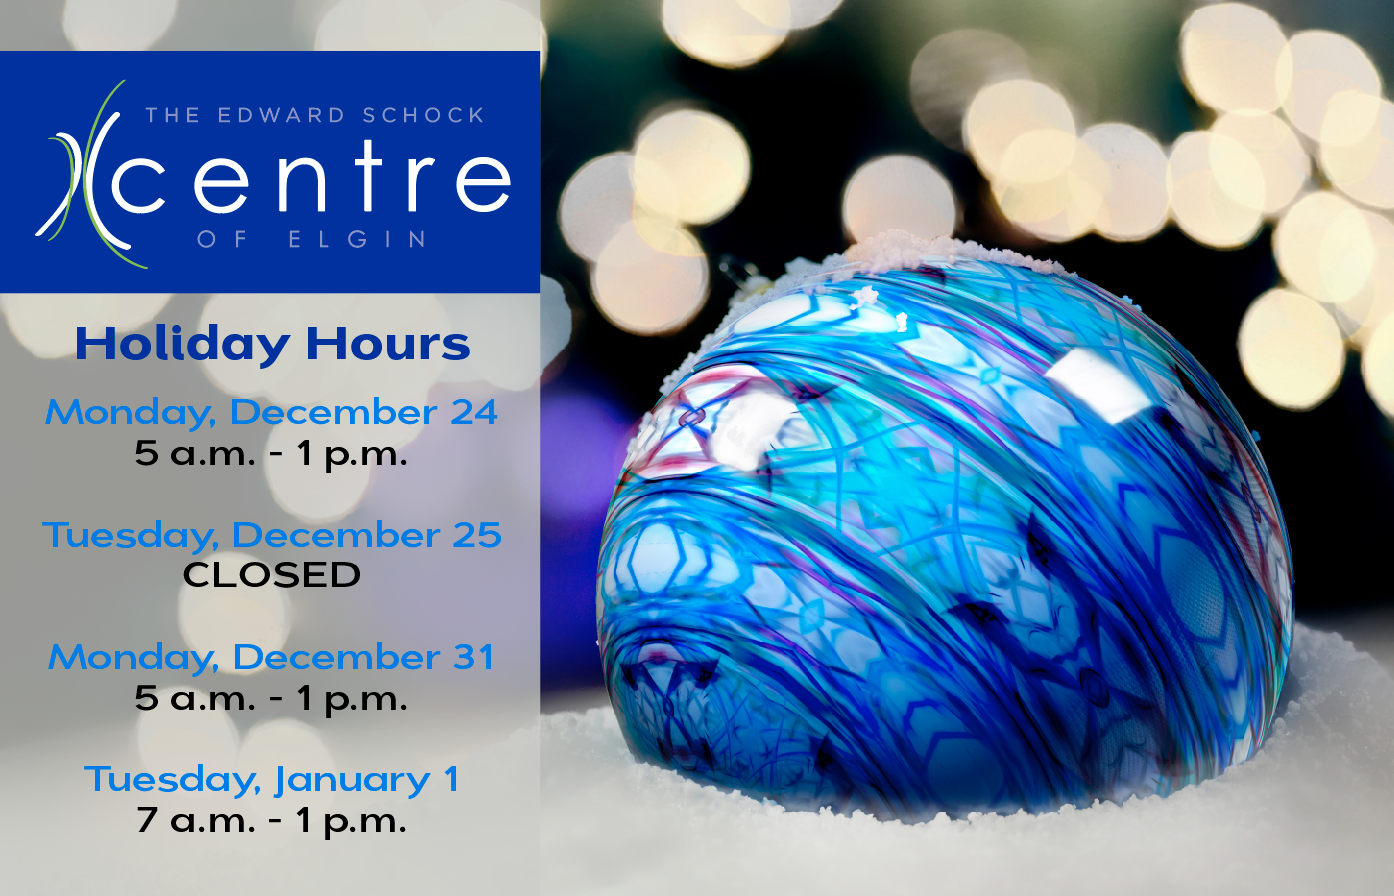 Centre Holiday Hours Image